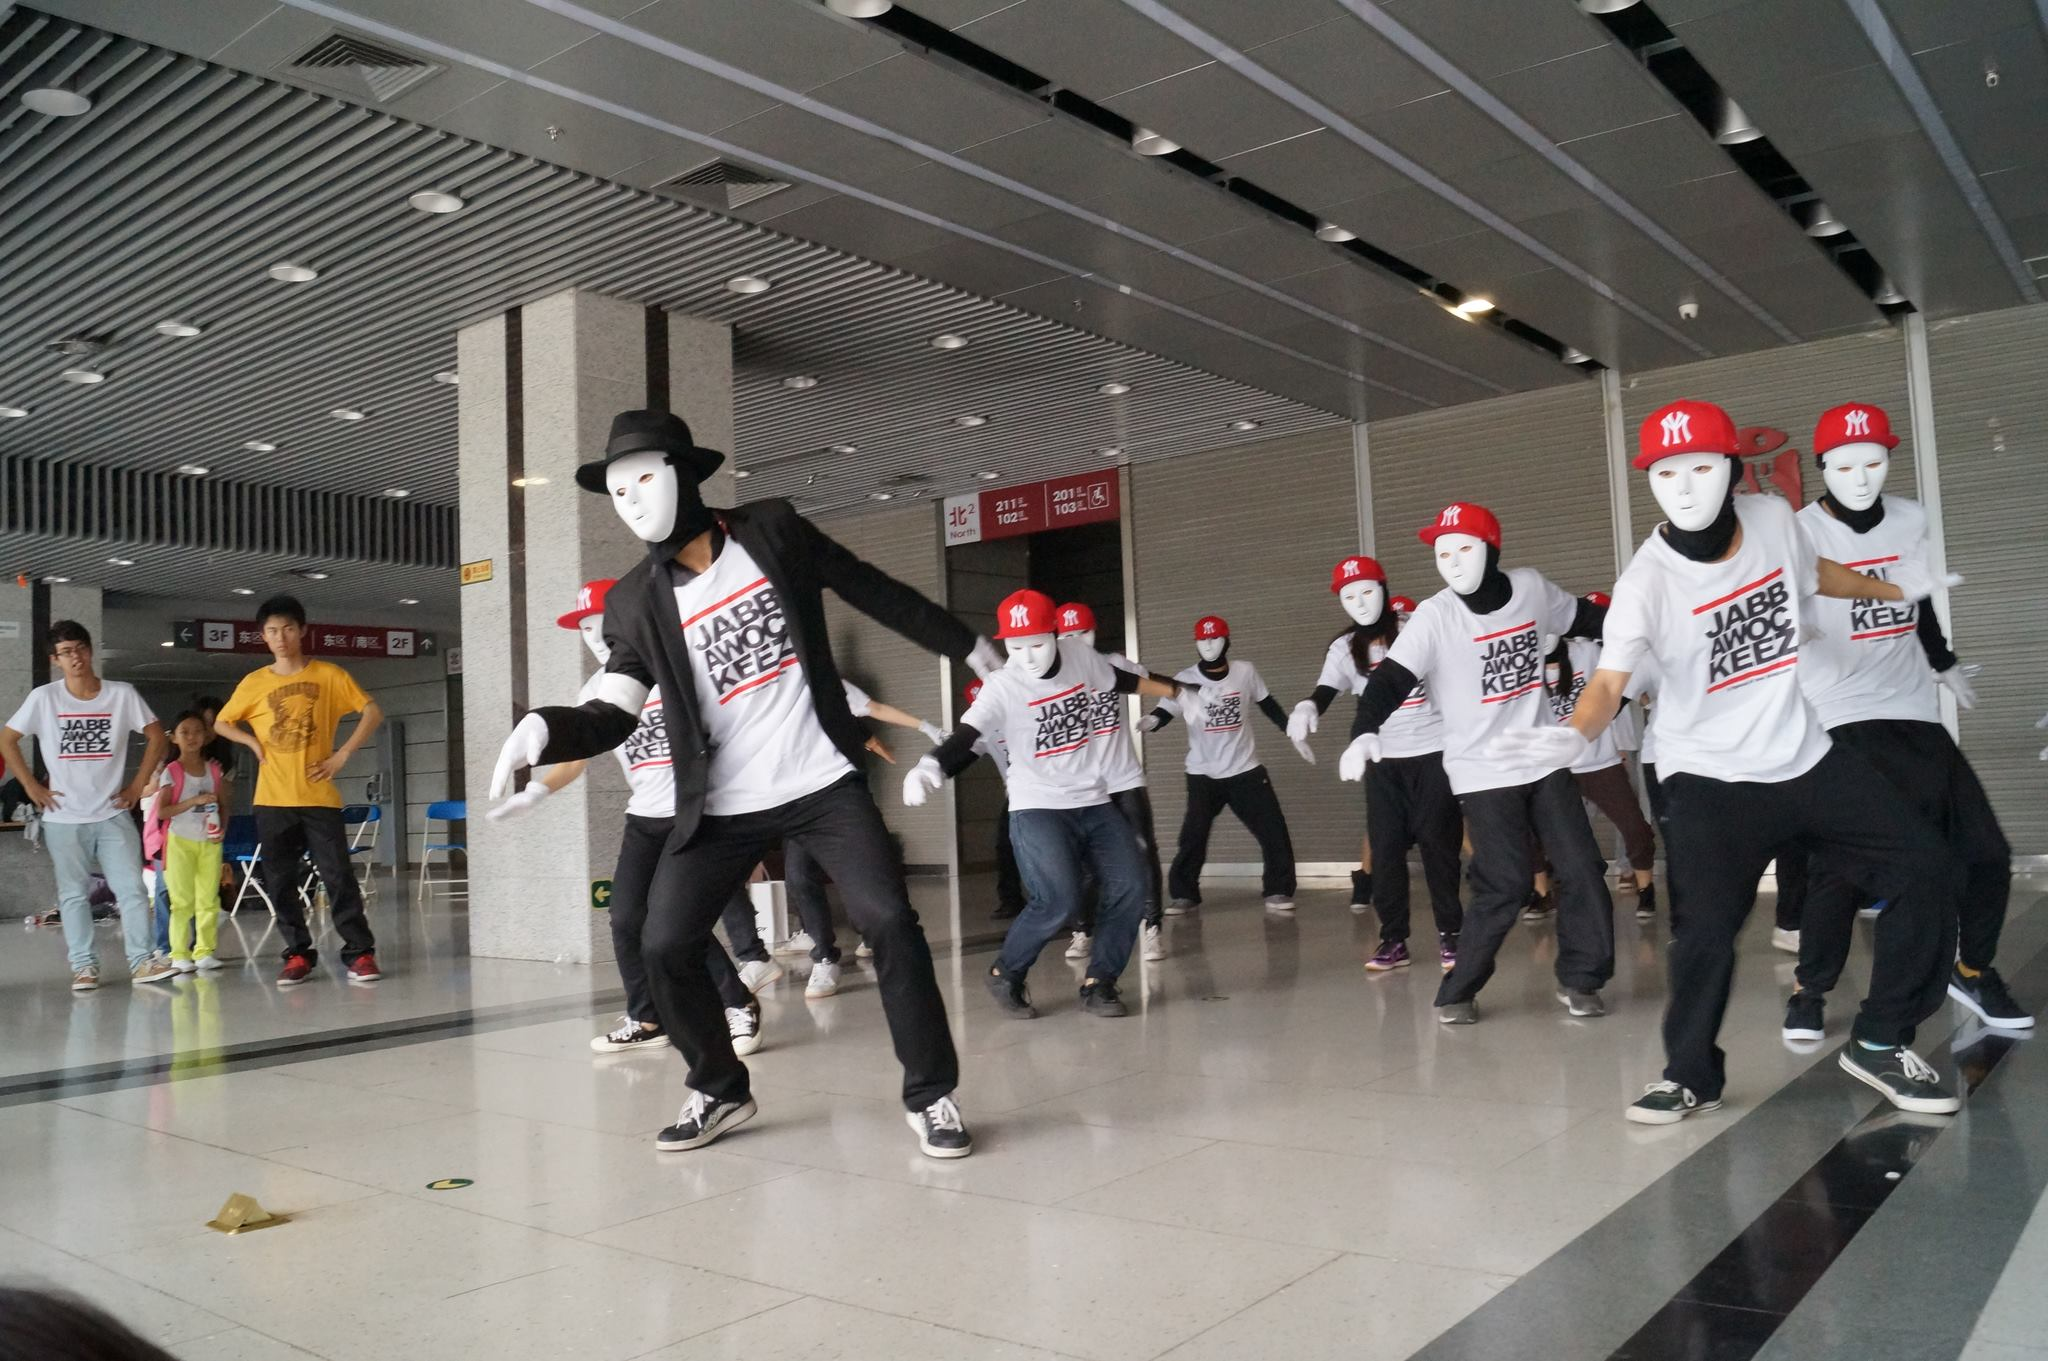 China's Jabbawockeez